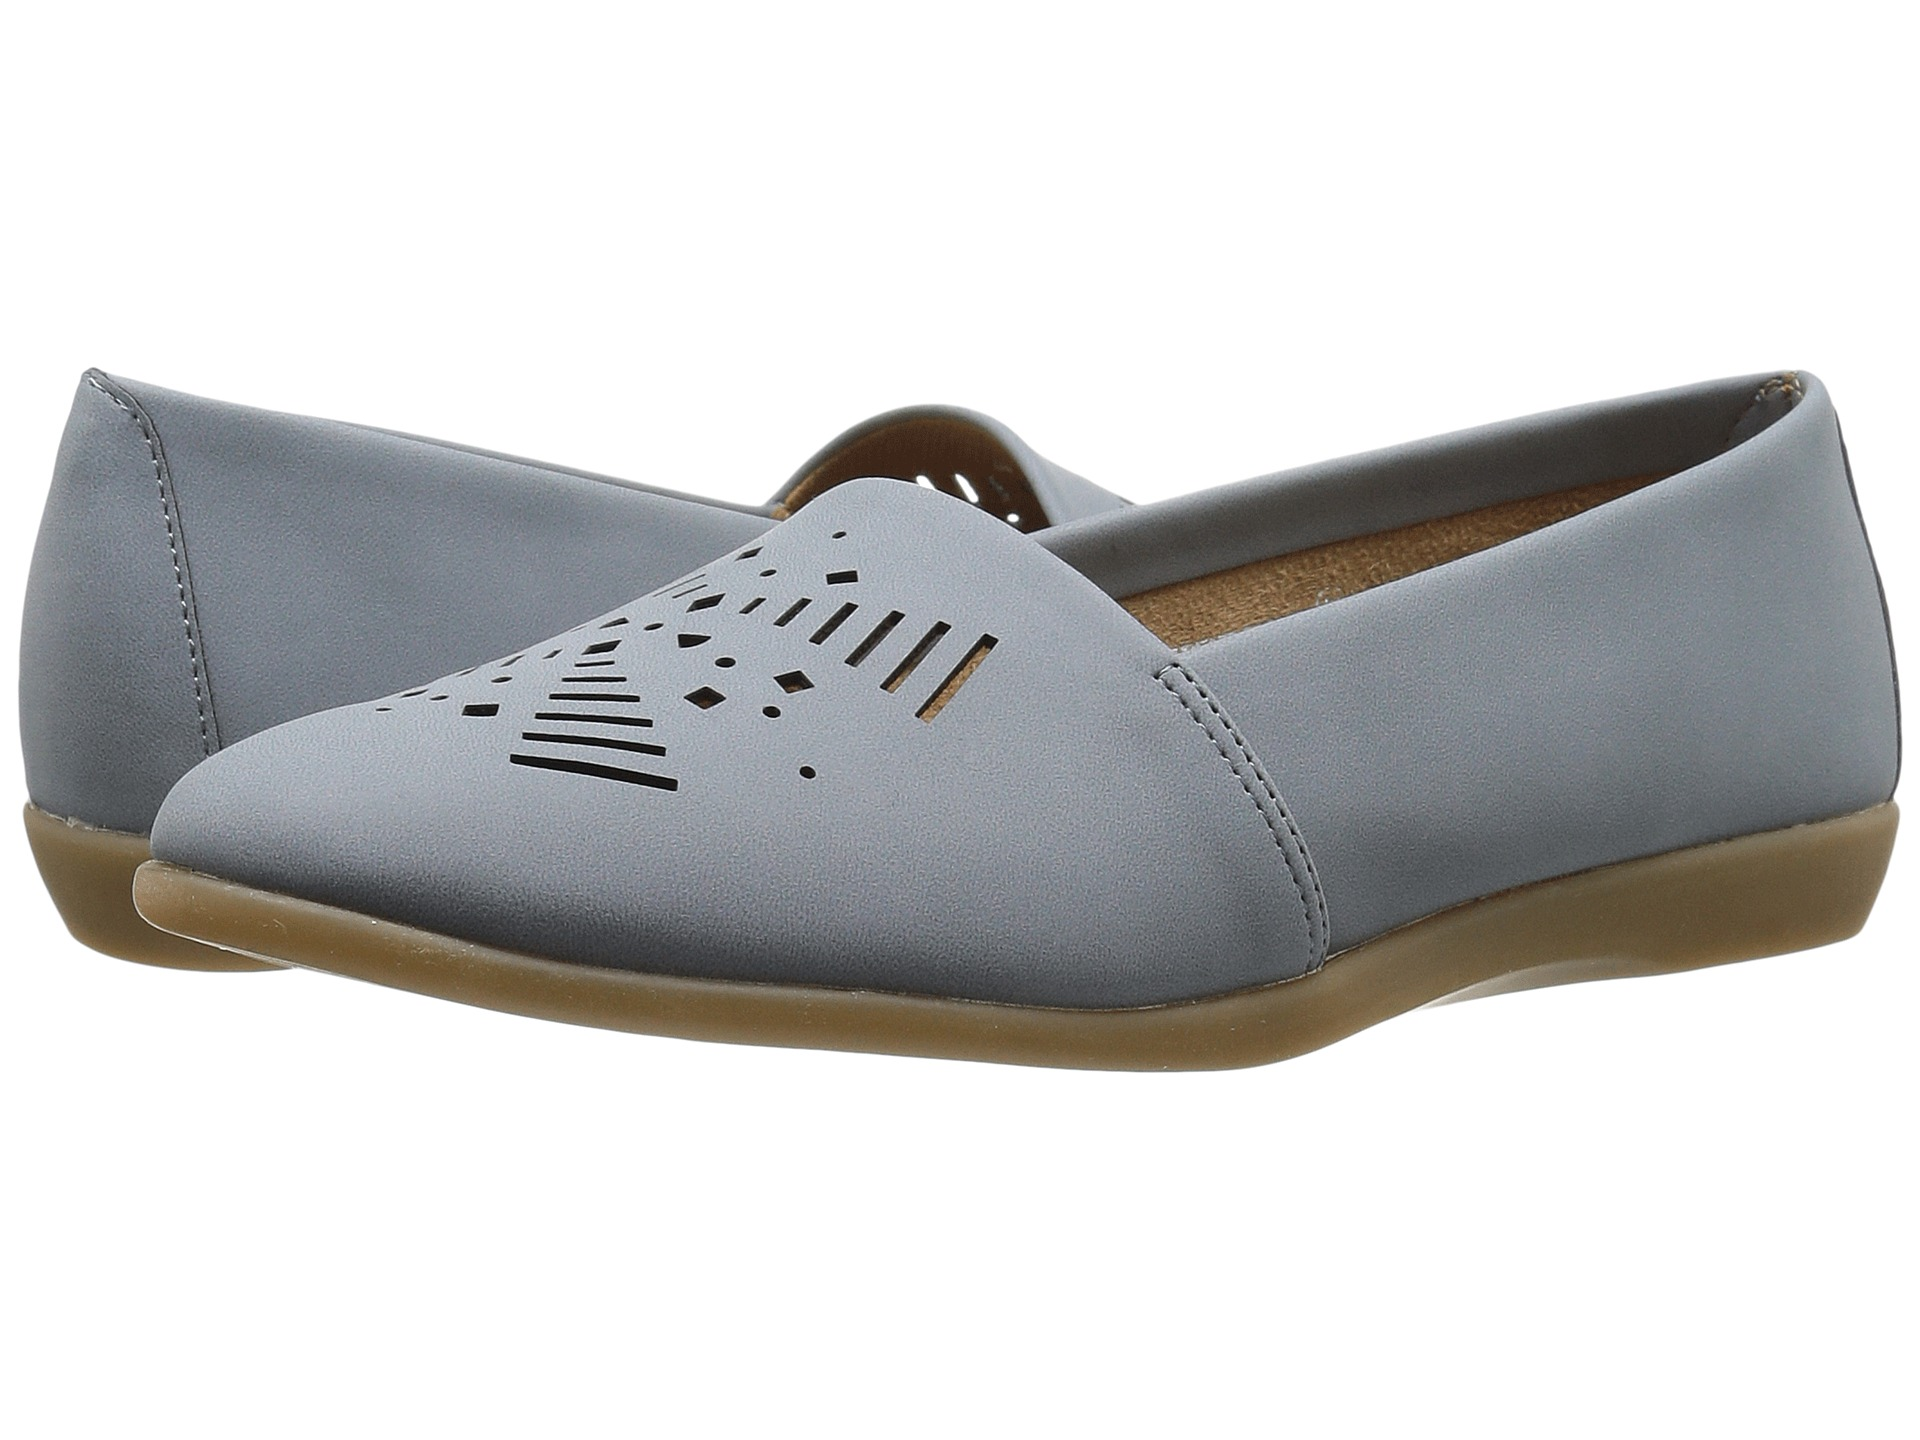 A2 by Aerosoles Trend Right at 6pm.com